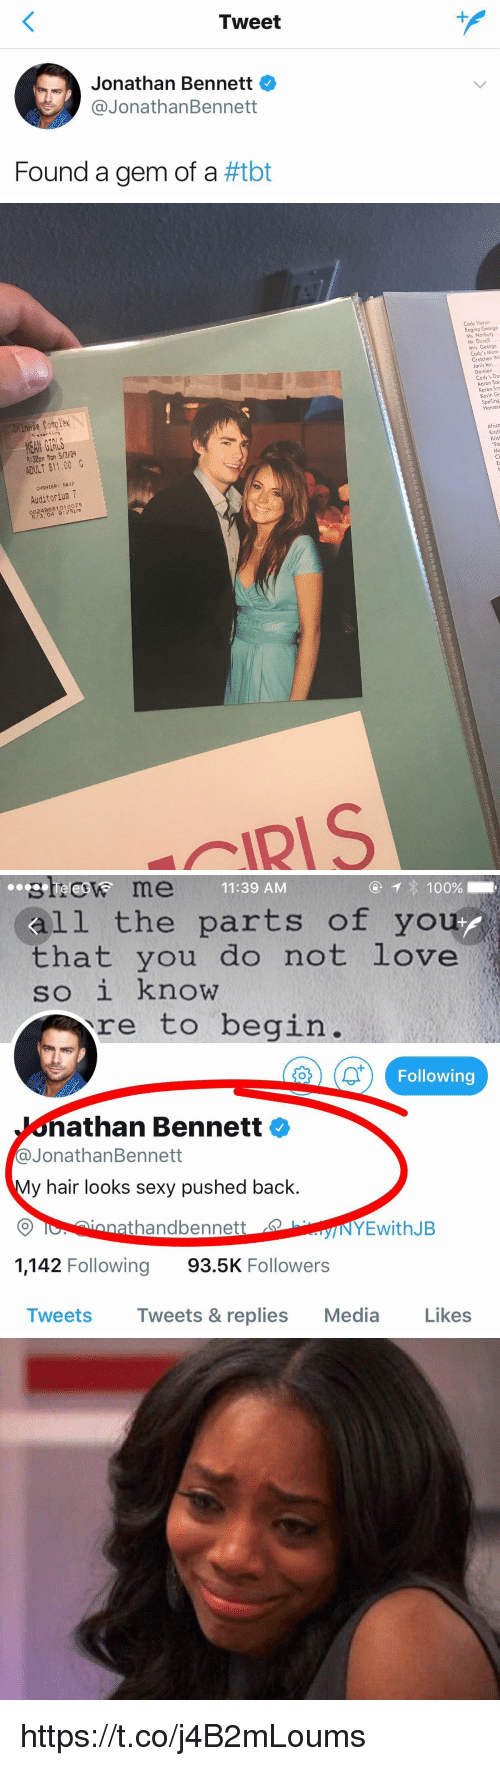 Iris: Tweet  Jonathan Bennett  @JonathanBennett  Found a gem of a #tbt   Cody Heron  Regino George  ex  MEAN GIRLS  9:30pm Man 5/3/34  ADULT $11.00  CASHIER: 5637  Auditorium 7  249881010075  /3, 04 9:25pm  IRIS   steew me  11:39 AM  all the parts of you  that you do not love  SO 1 Know  re to begin.  1  Following  athan Bennett  @@JonathanBennett  y hair looks sexy pushed back.  nnathandbennett  1,142 Following 93.5K Followers  INYEwithJB  Tweets Tweets & replies Media Likes https://t.co/j4B2mLoums